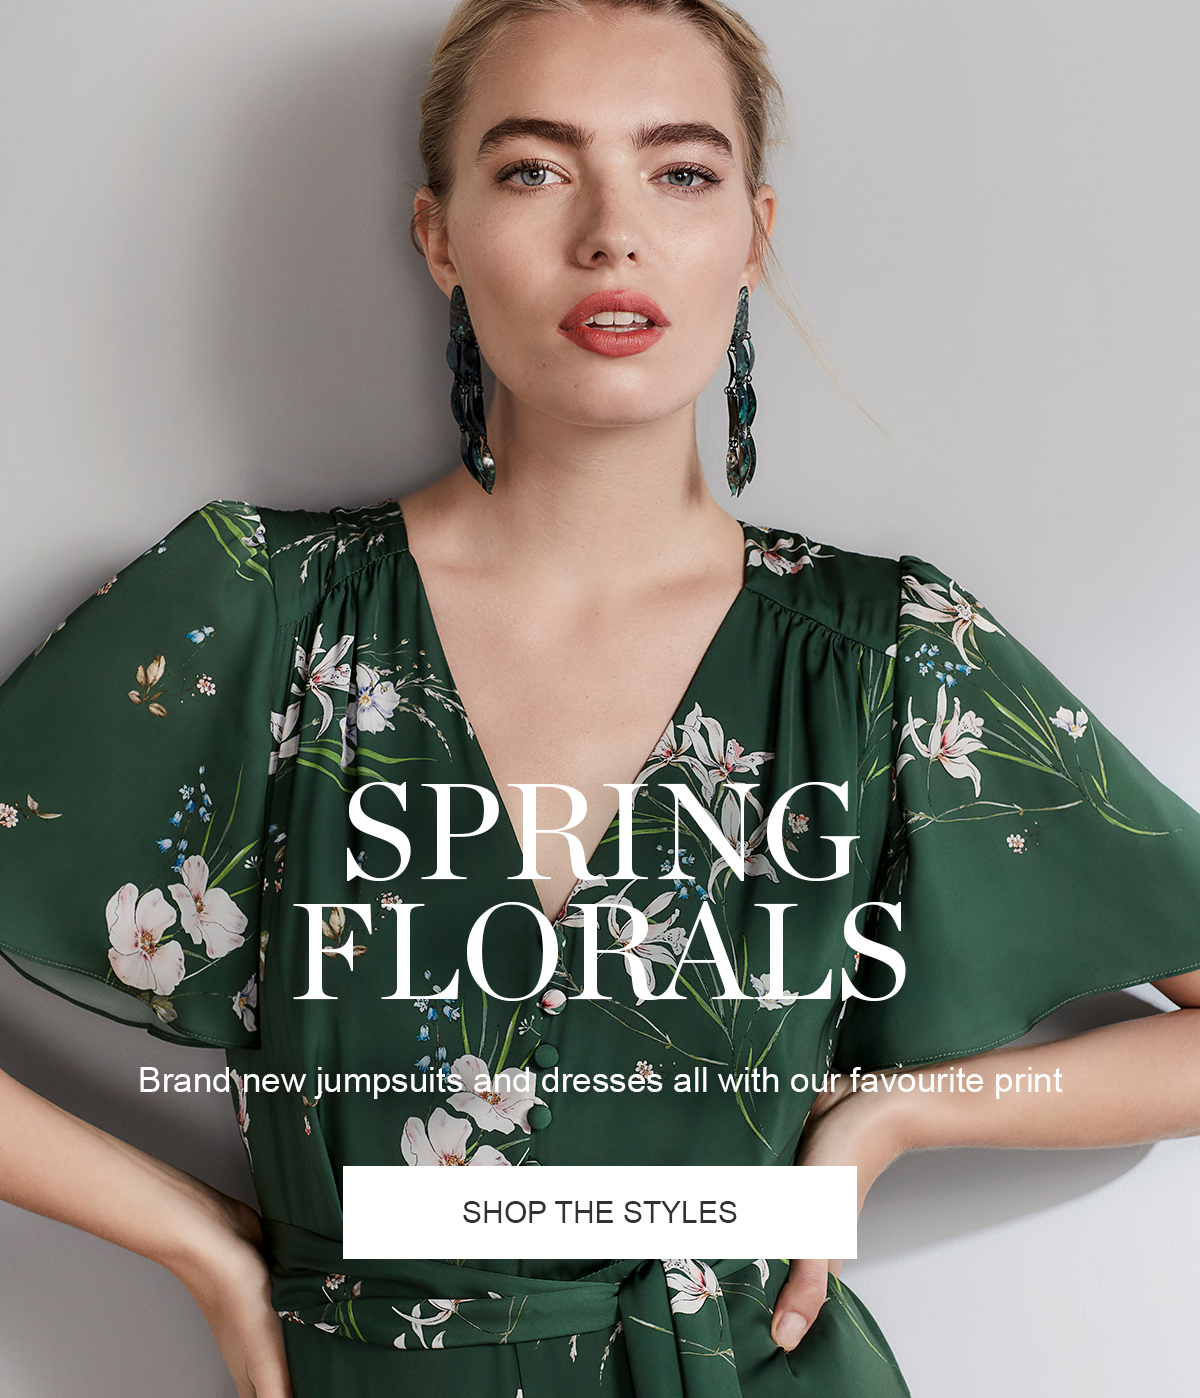 Spring Florals | Brand new jumpsuits and dresses all with our favourite print | Shop the Styles